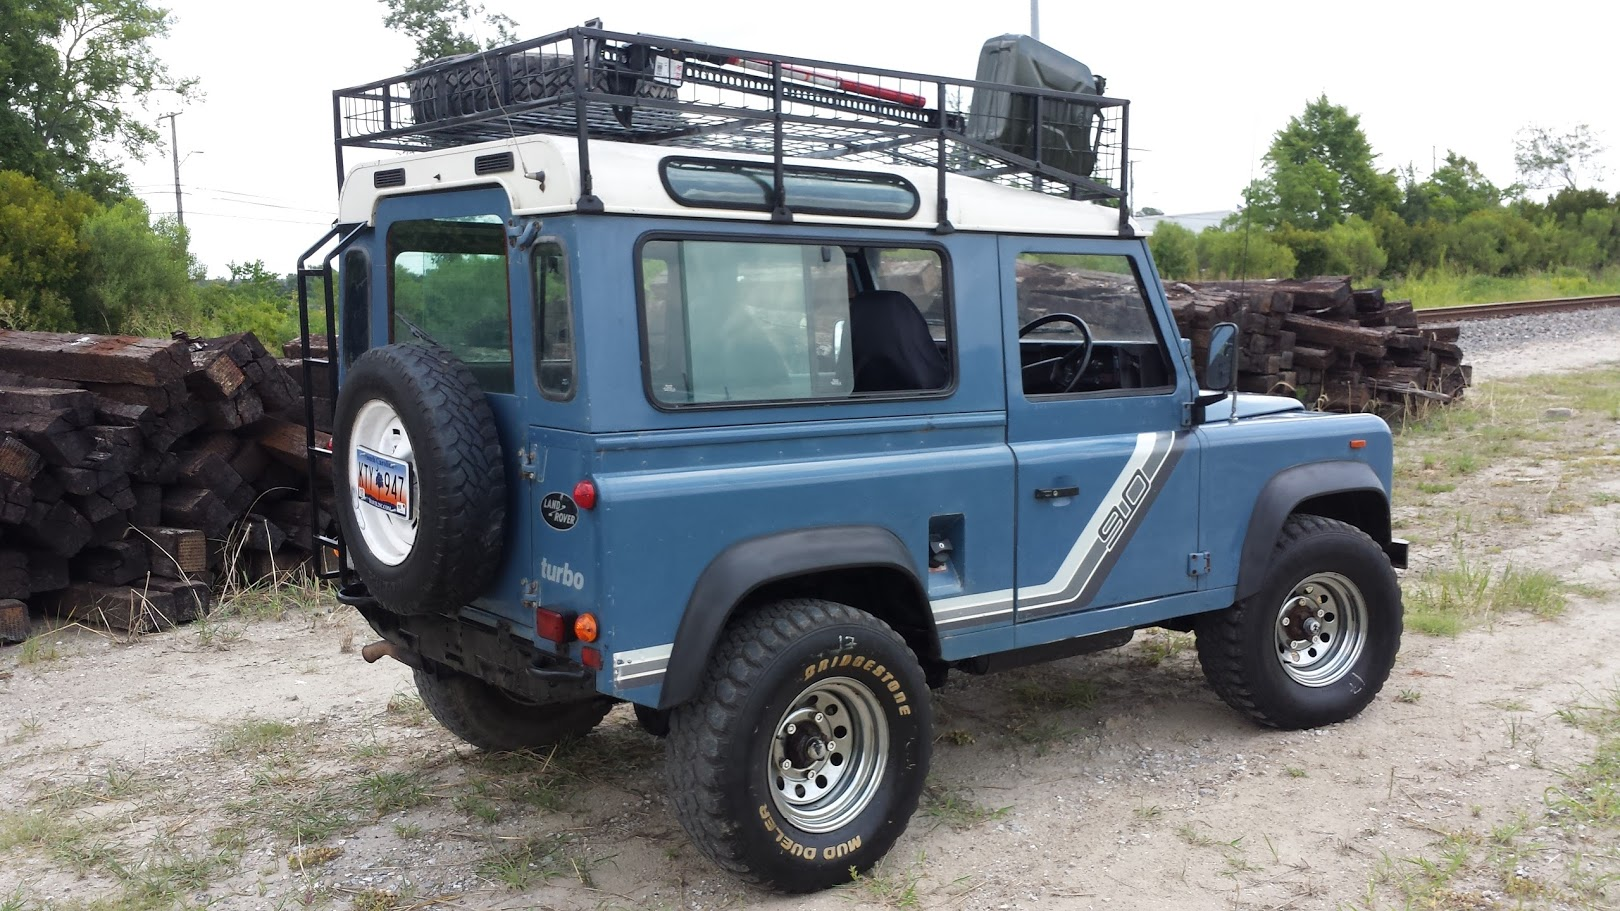 Interest Rate Calculator Car >> Big Beef Land Rover D90 – Relic Imports | Land Rover ...